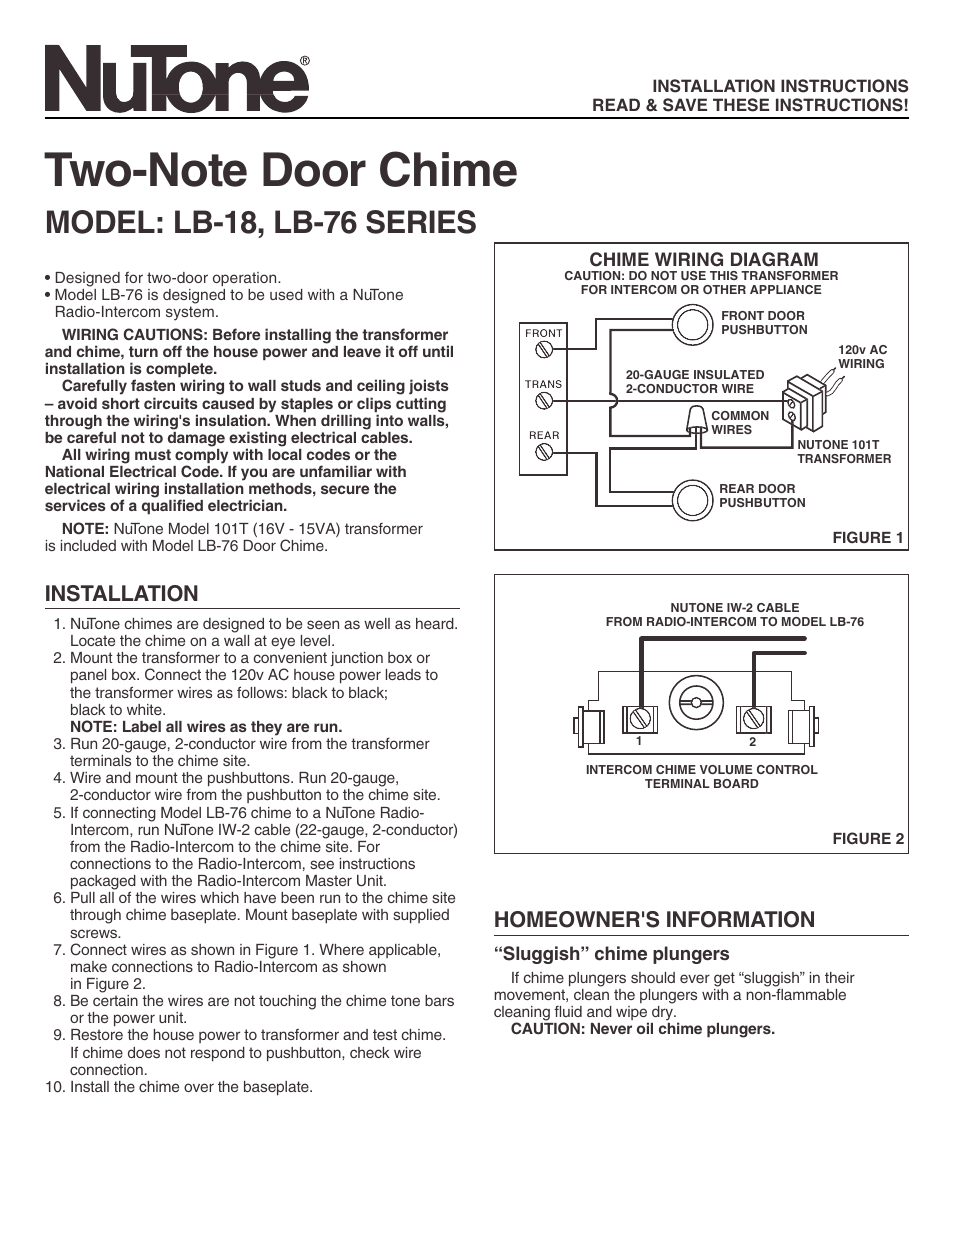 nutone two note door chime lb 76 page1?resize\\\\\\\\\\\\\\\\\\\\\\\\\\\\\\\=665%2C861 friedland type 4 nom ance wiring diagram friedland d107 wiring  at creativeand.co